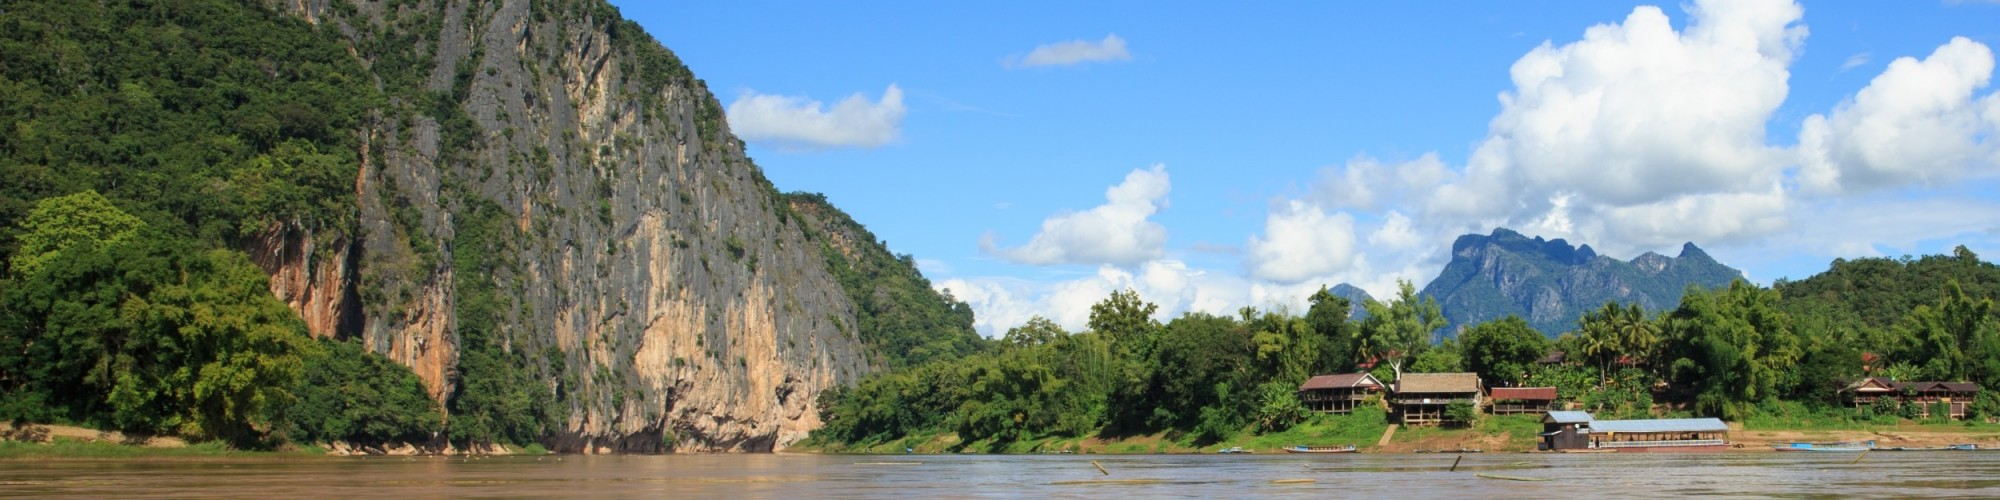 Nam Ou area on the Mekong River located near Pak Ou Cave, Luang Prabang, Laos